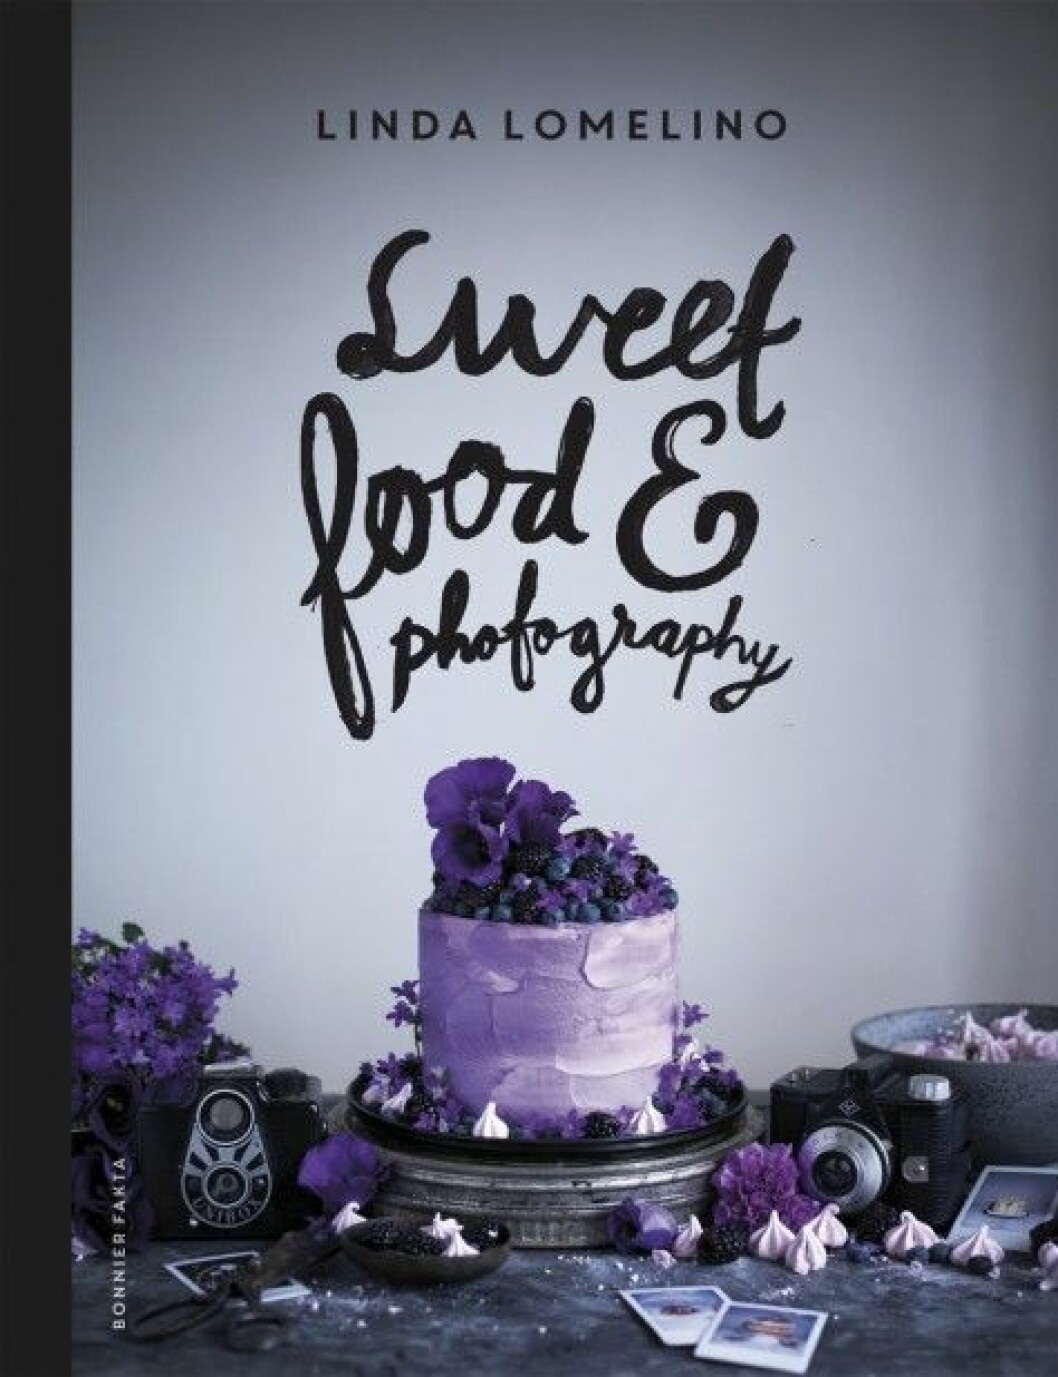 Sweet-food-and-photography-Linda-Lomelino